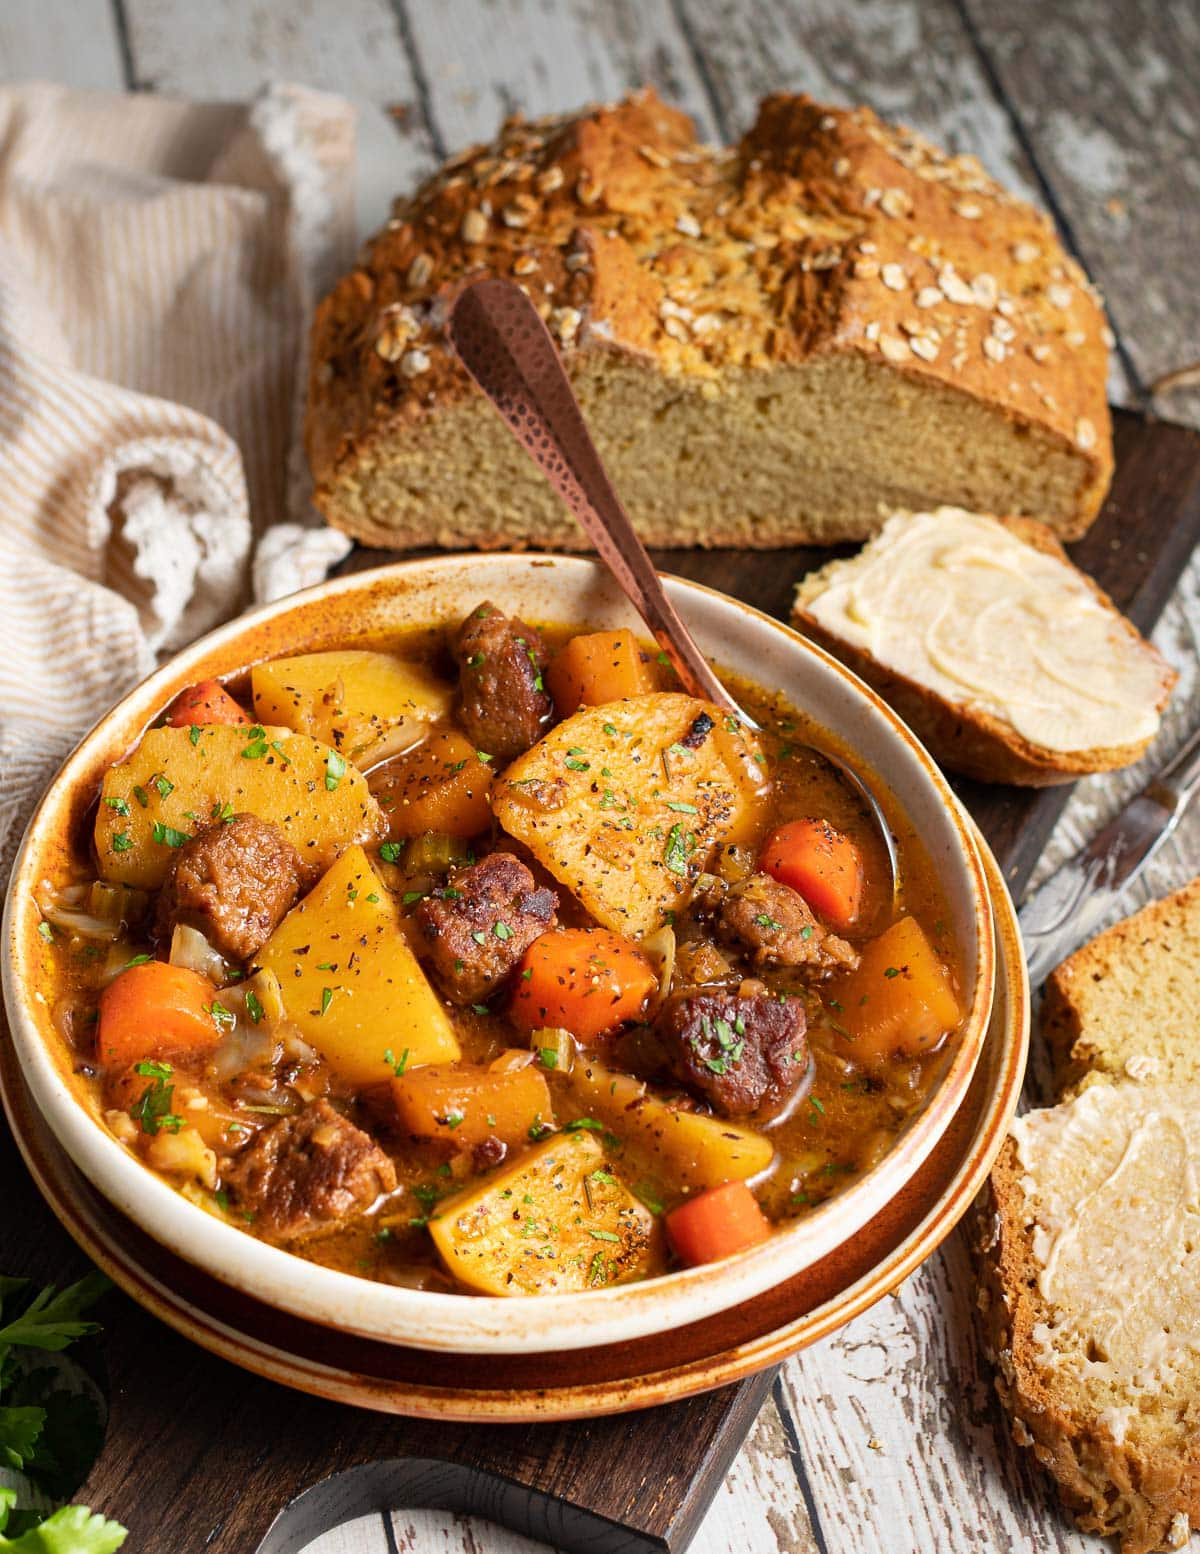 a bowl of stew next to some soda bread